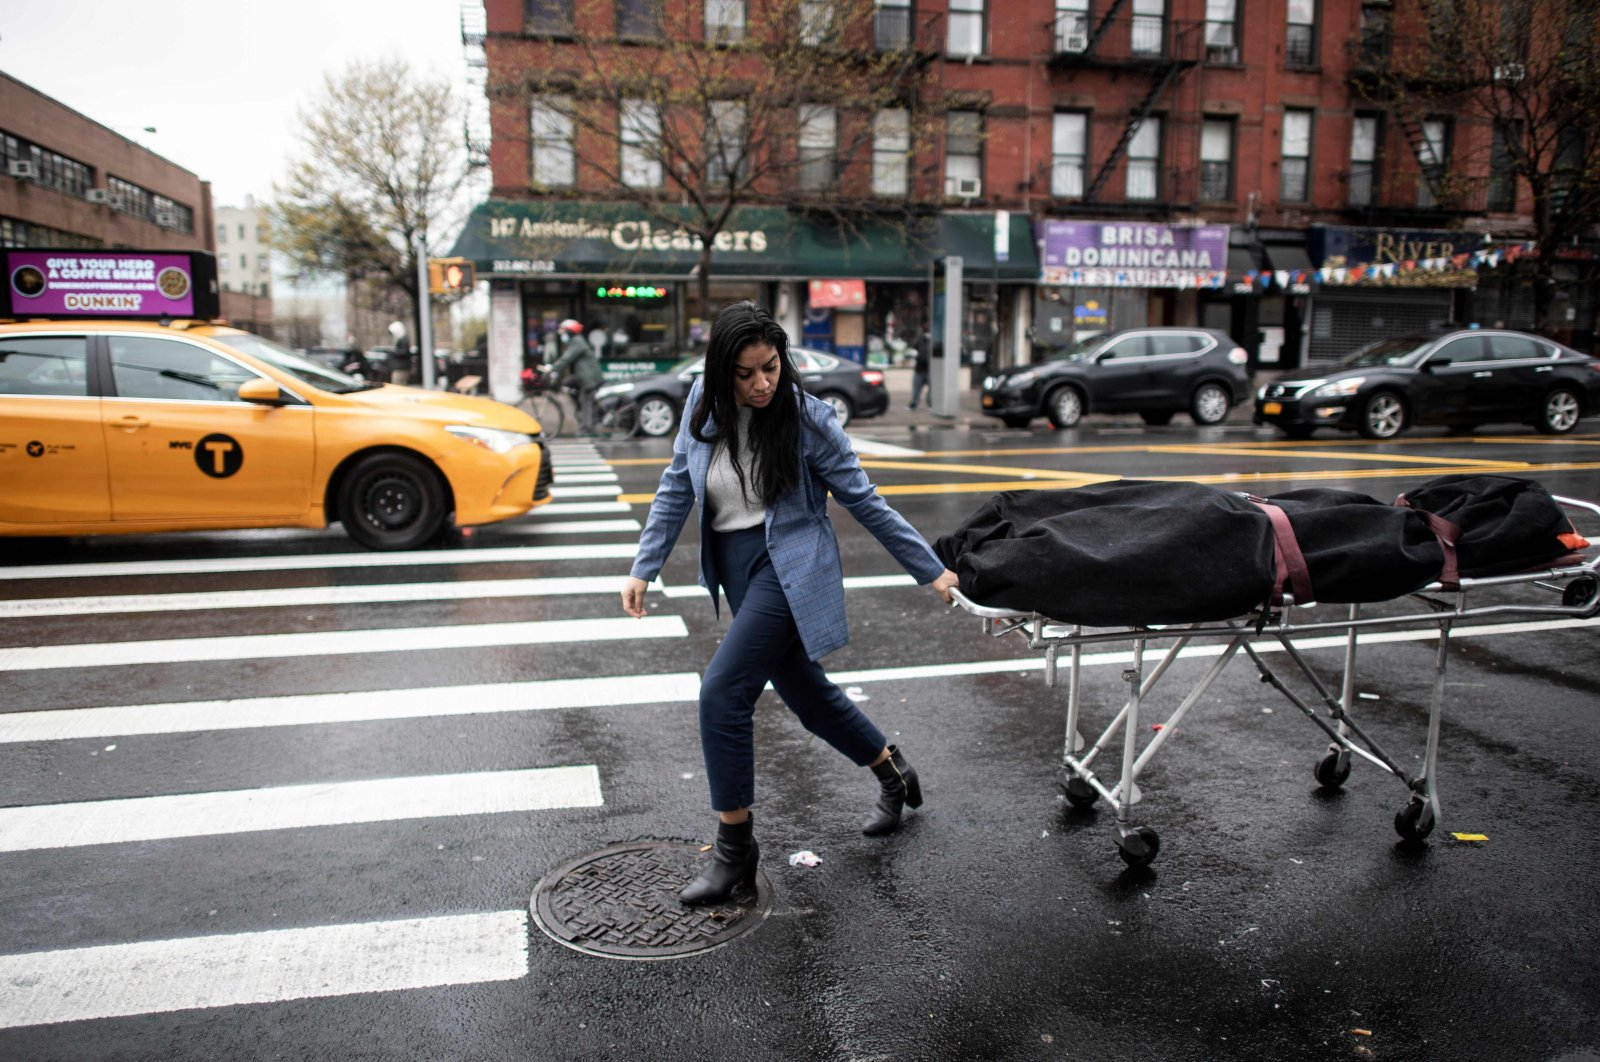 Alisha Narvaez Manager at International Funeral & Cremation Services transports a body to the funeral home in the Harlem neighborhood of New York City, New York, U.S., April 24, 2020. (AFP Photo)